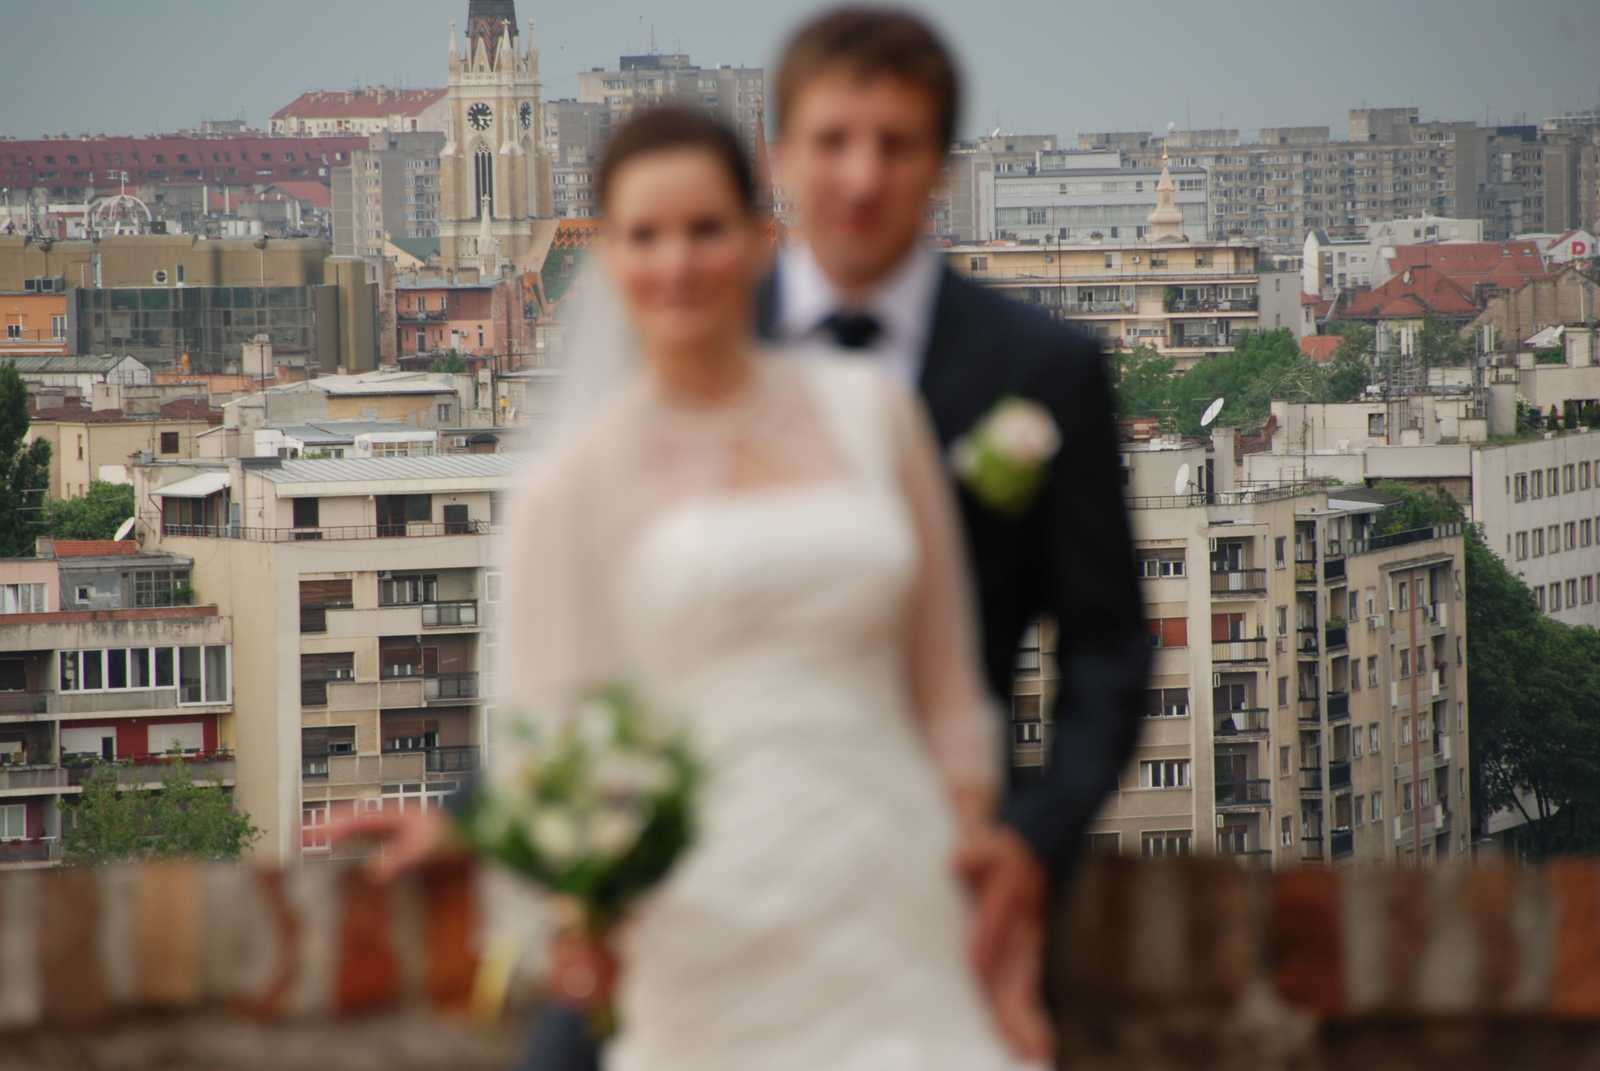 Weddings - Jelena and Nebojsa, out of focus